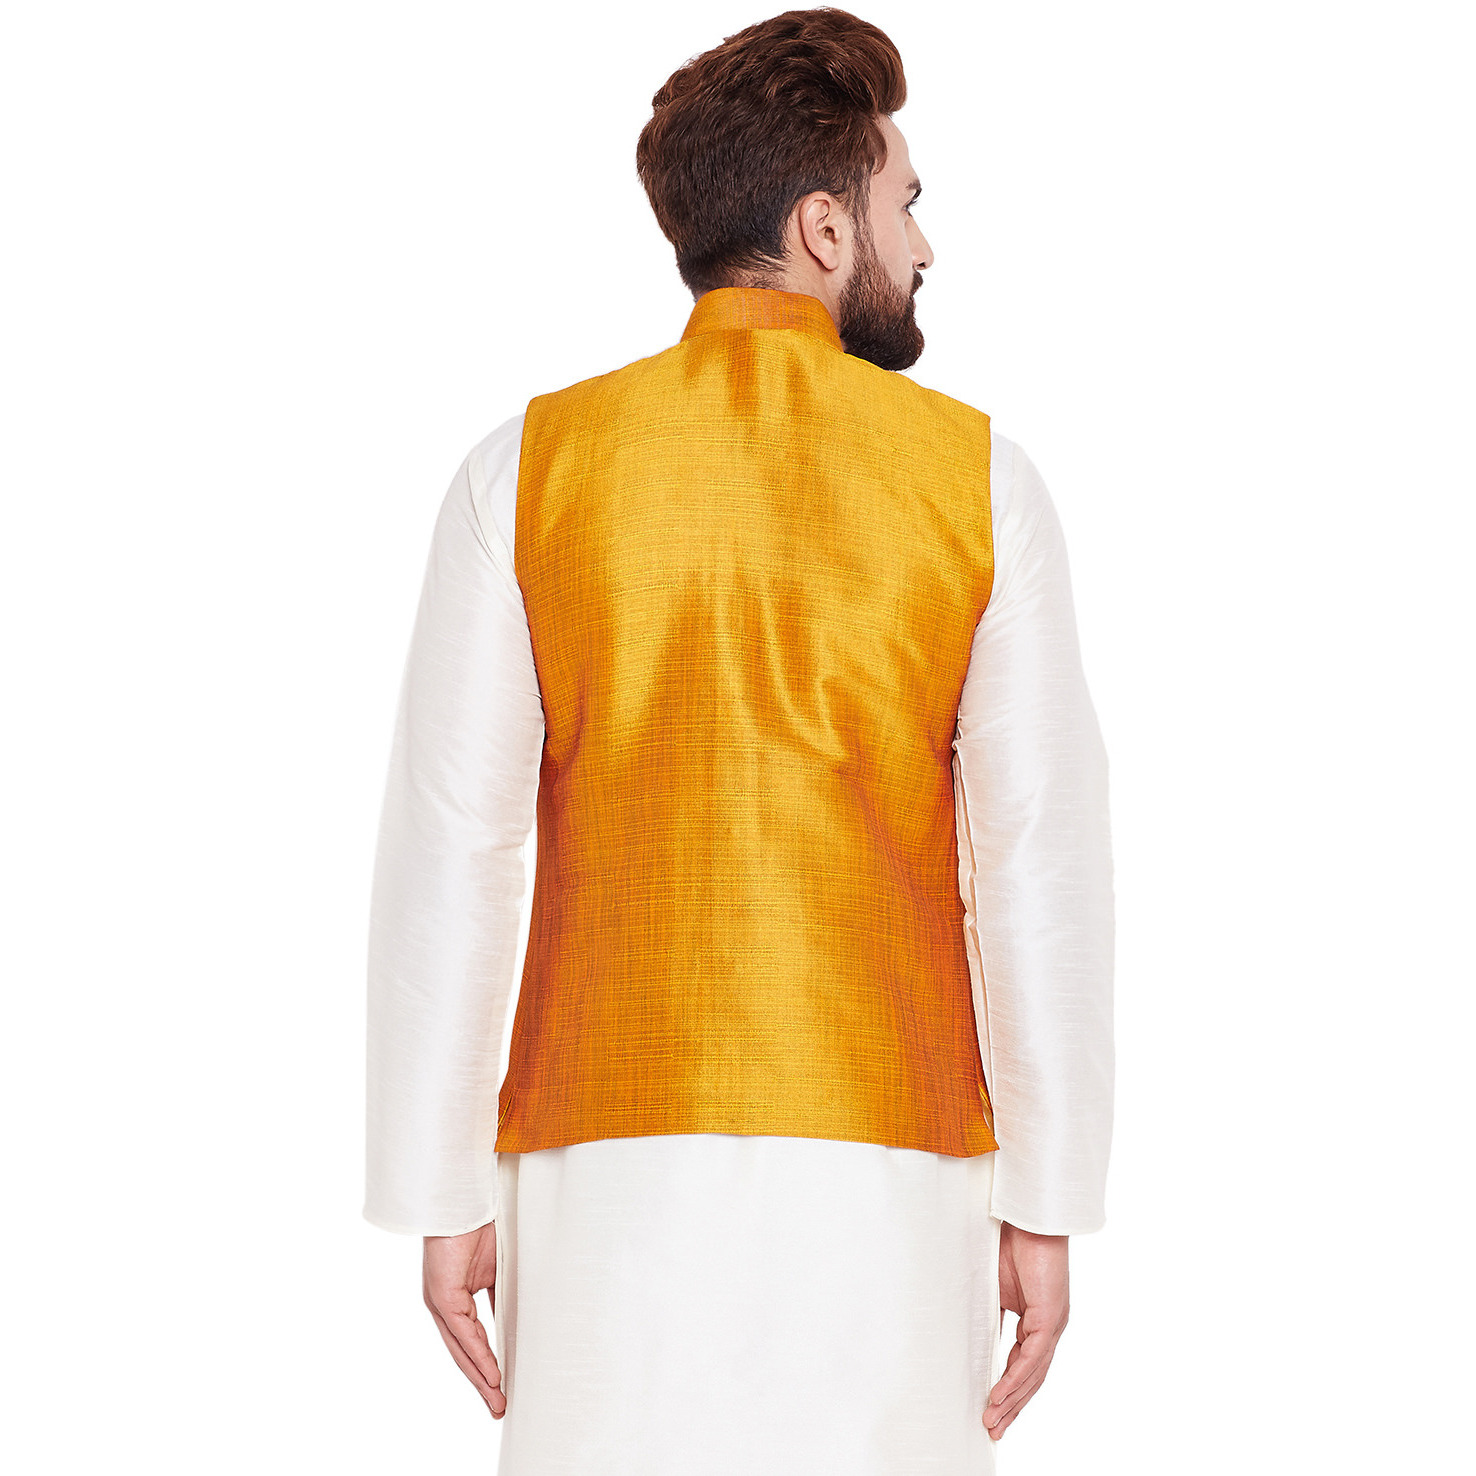 Sojanya (Since 1958)B Mens Traditional Ethnic Wear Dupion silk Mustard Nehru Jacket Regular Fit Waistcoat